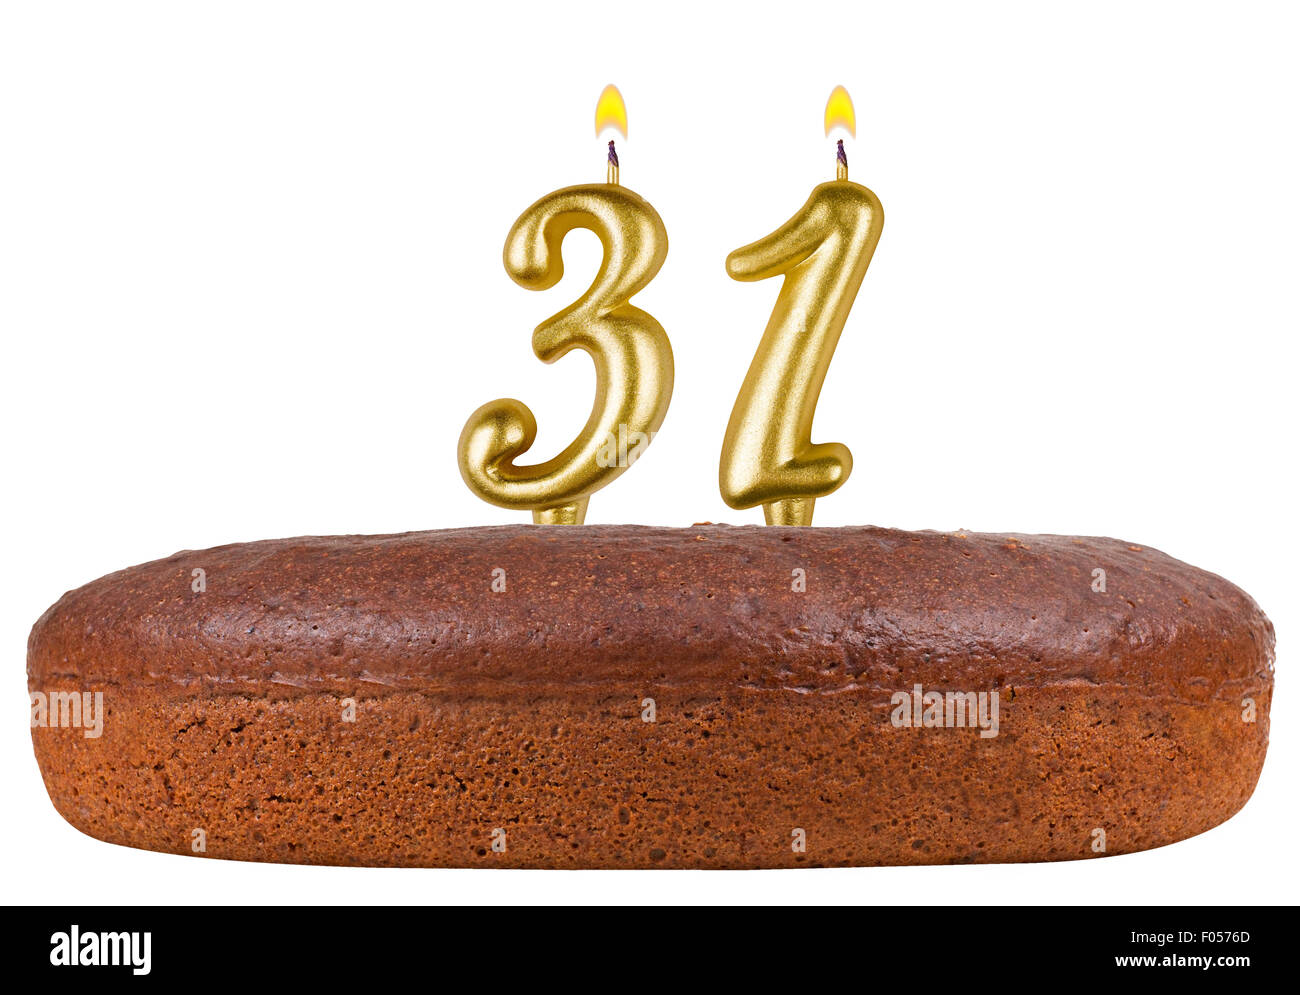 Birthday Cake With Candles Number 31 Isolated On White Background